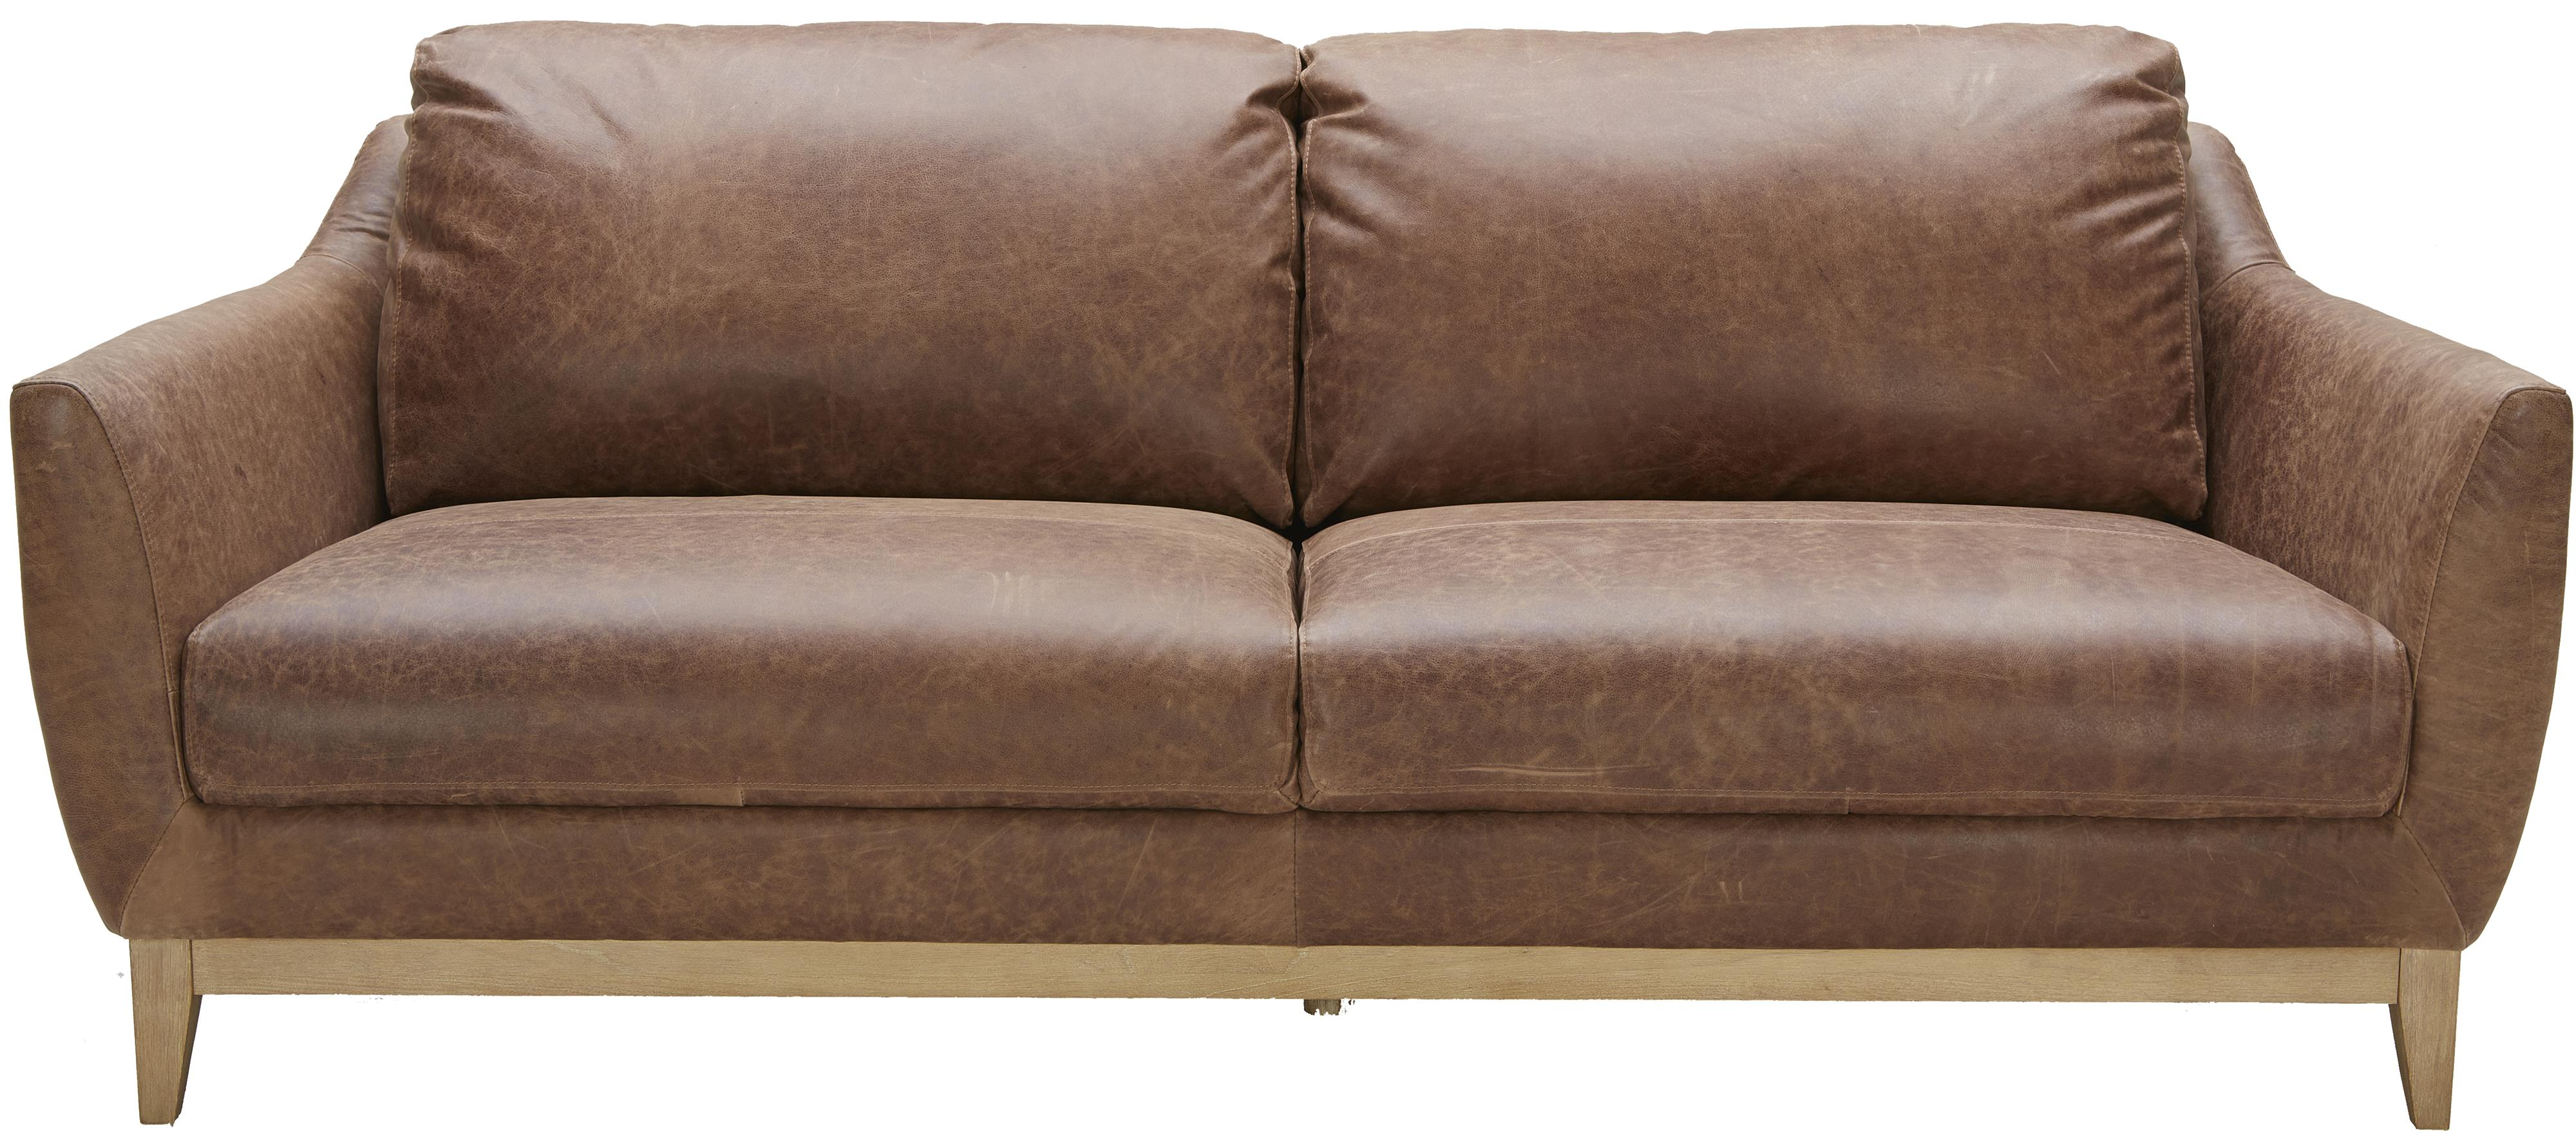 Urban Evolution Baker Modern Leather Sofa Belfort Furniture Sofas